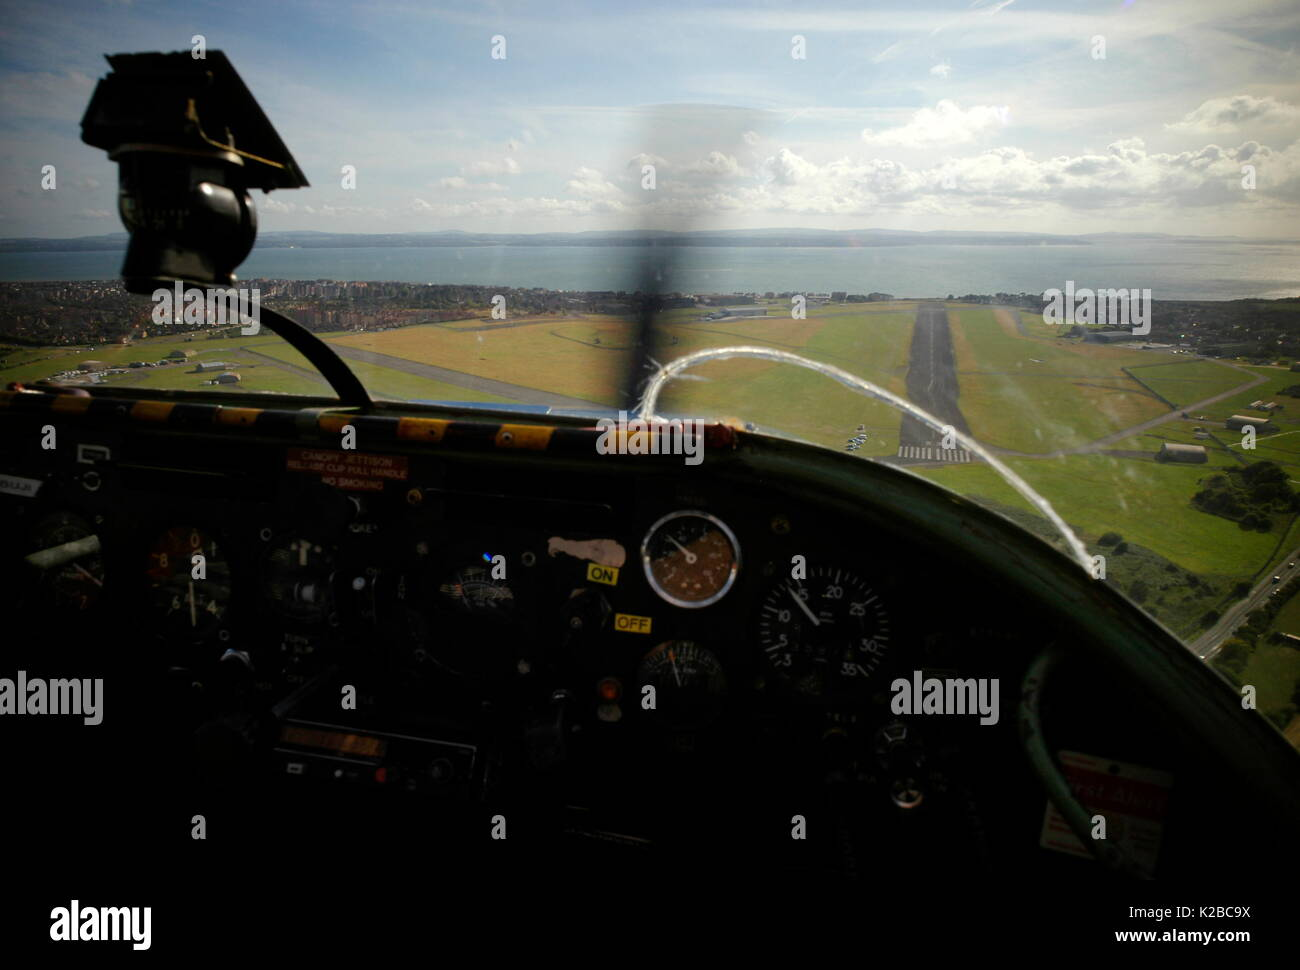 AJAXNETPHOTO. LEE-ON-THE-SOLENT, ENGLAND. - FINAL APPROACH - LIGHT AIRCRAFT MAKES FINAL APPROACH BEFORE LANDING ON DAEDALUS AIRFIELD.  PHOTO;JONATHAN EASTLAND/AJAX REF:RD110709_2139 - Stock Image